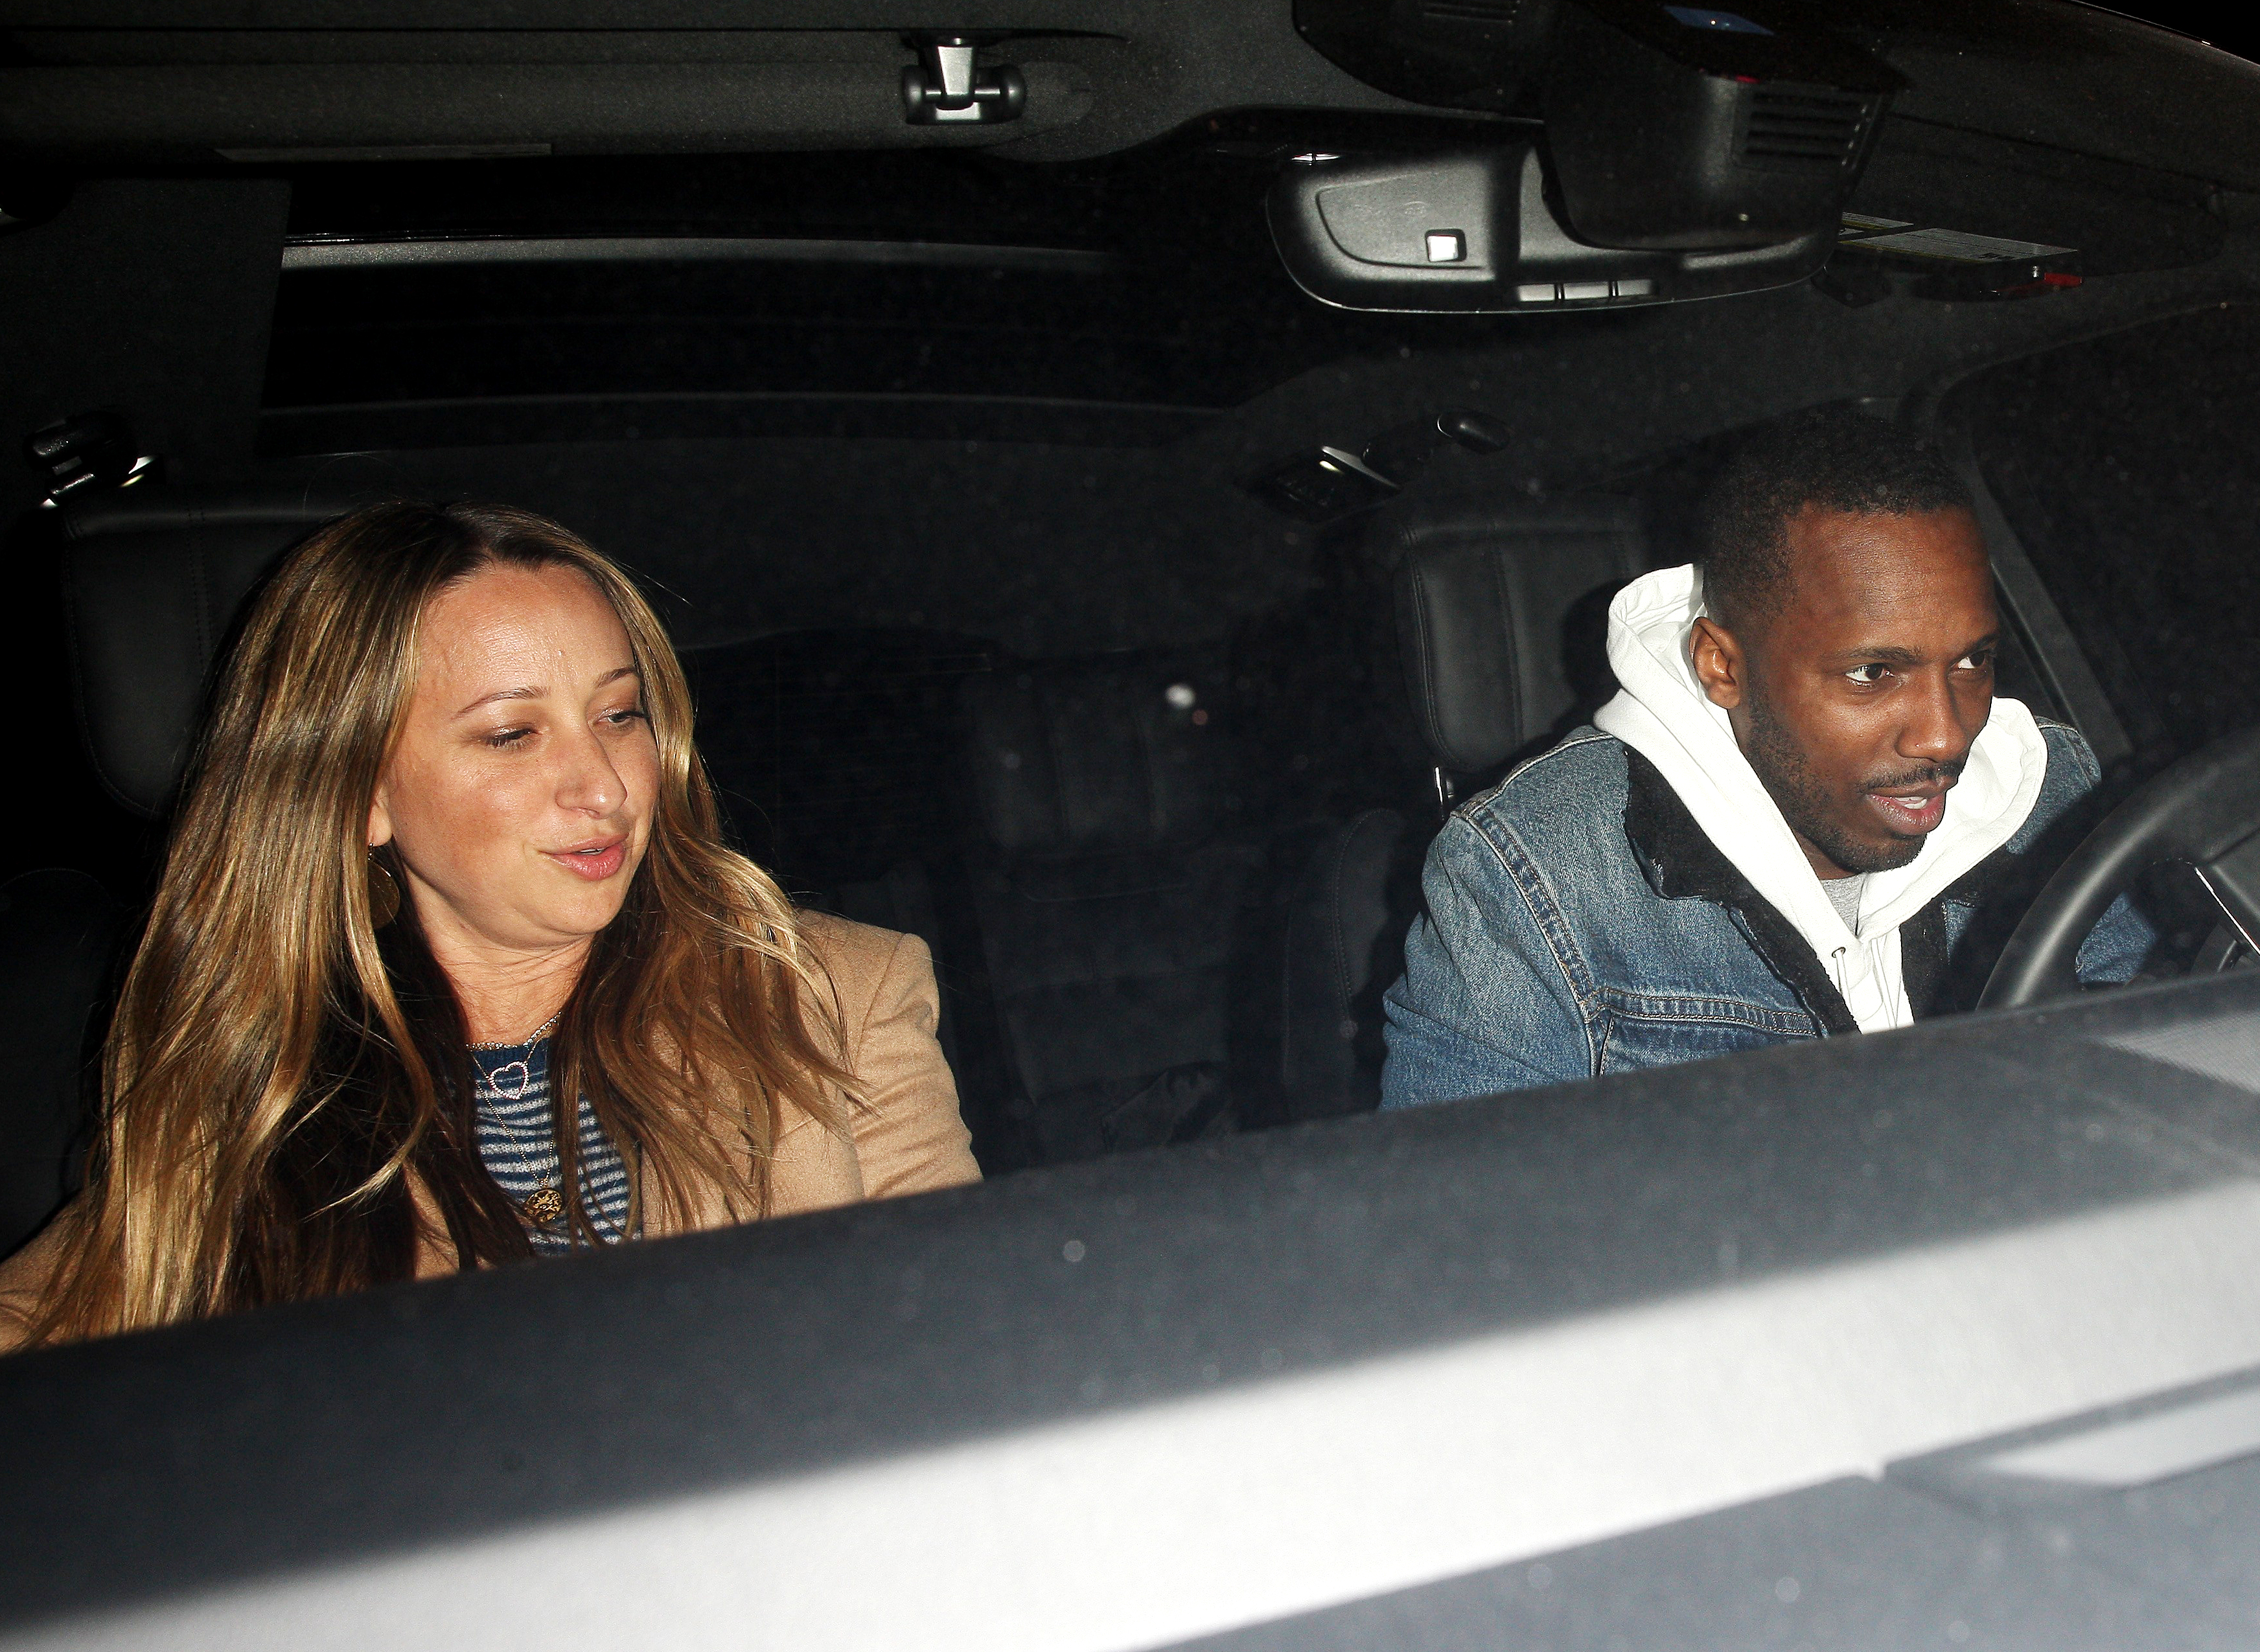 Jennifer Meyer with her parnter Rich paul